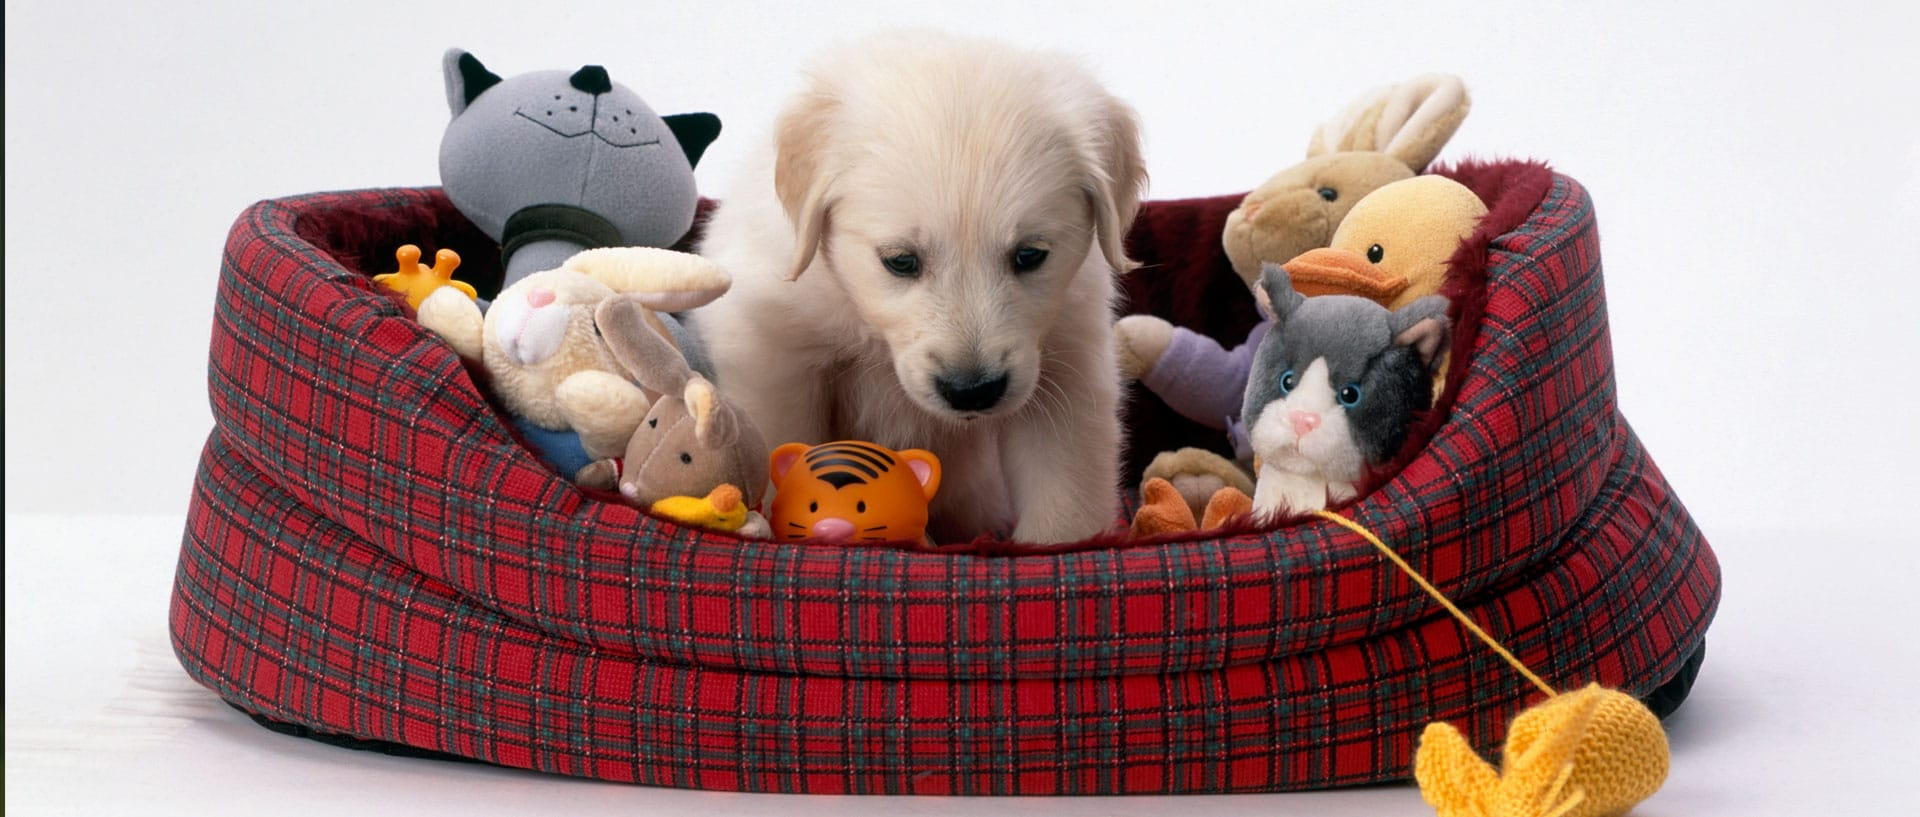 How to select the right chew toy for your dog | Healthy Chew Toys For Dogs